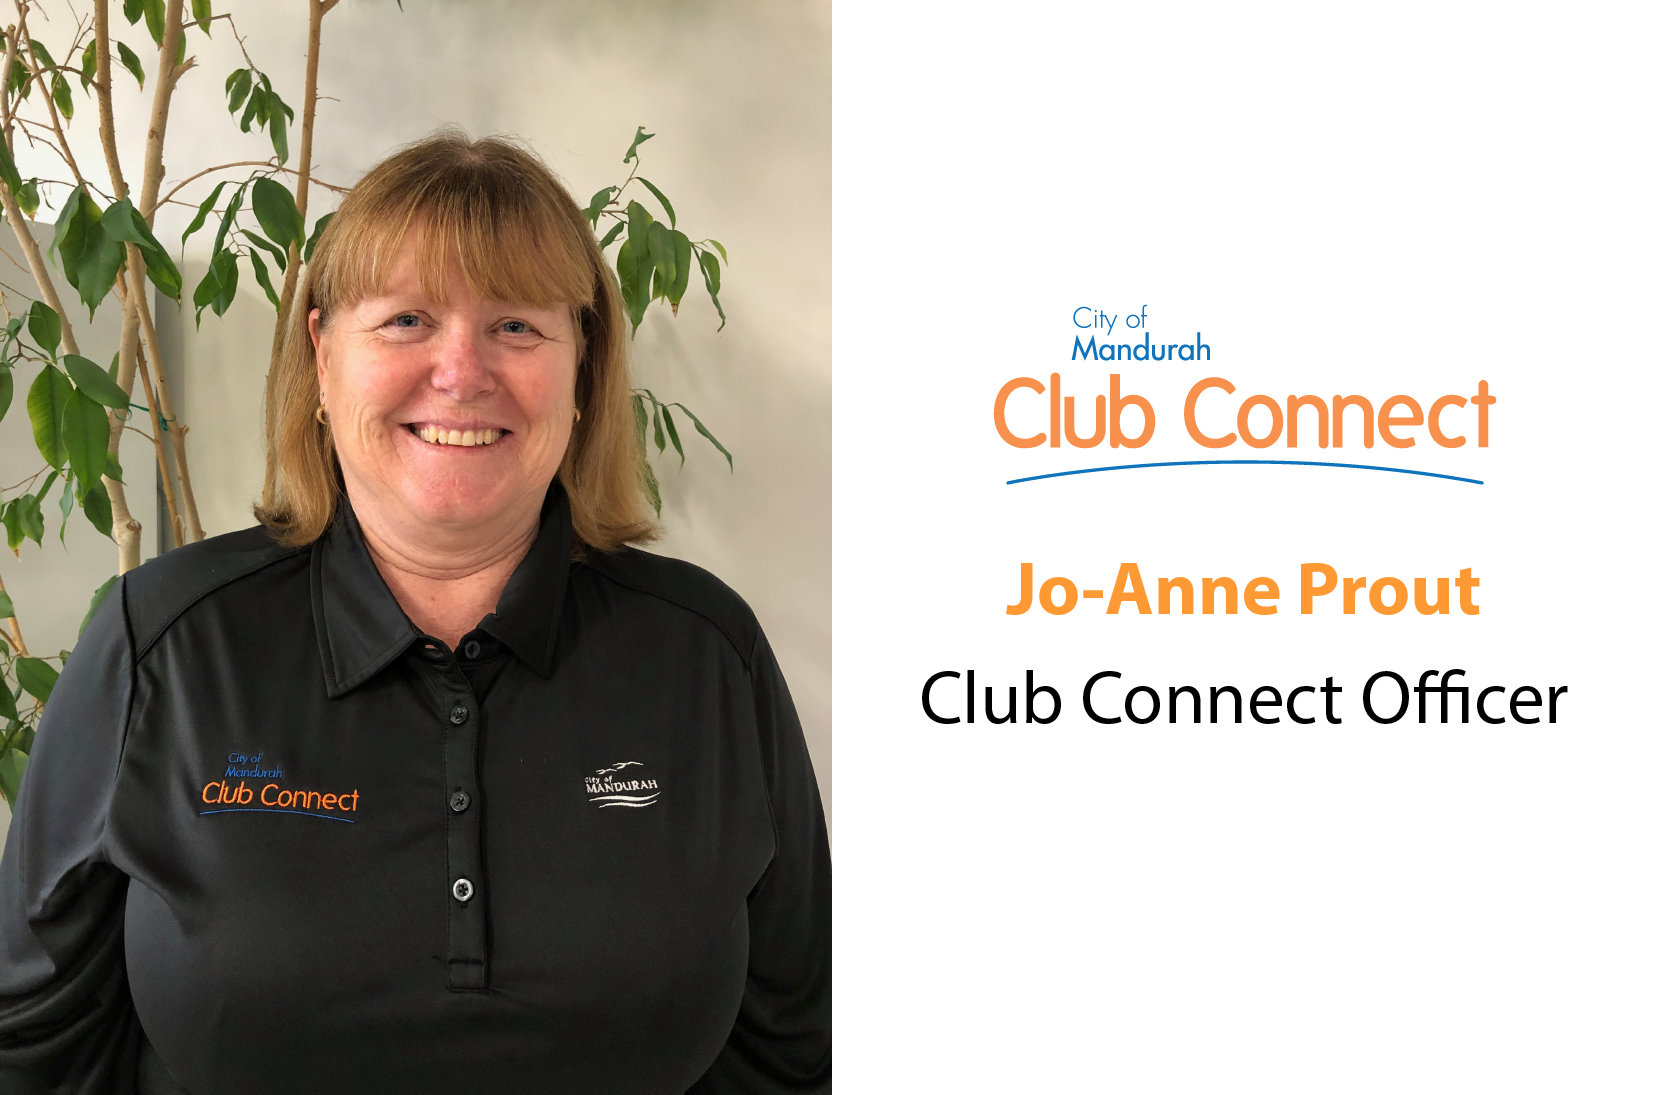 Jo-Anne Prout, Club Connect Officer